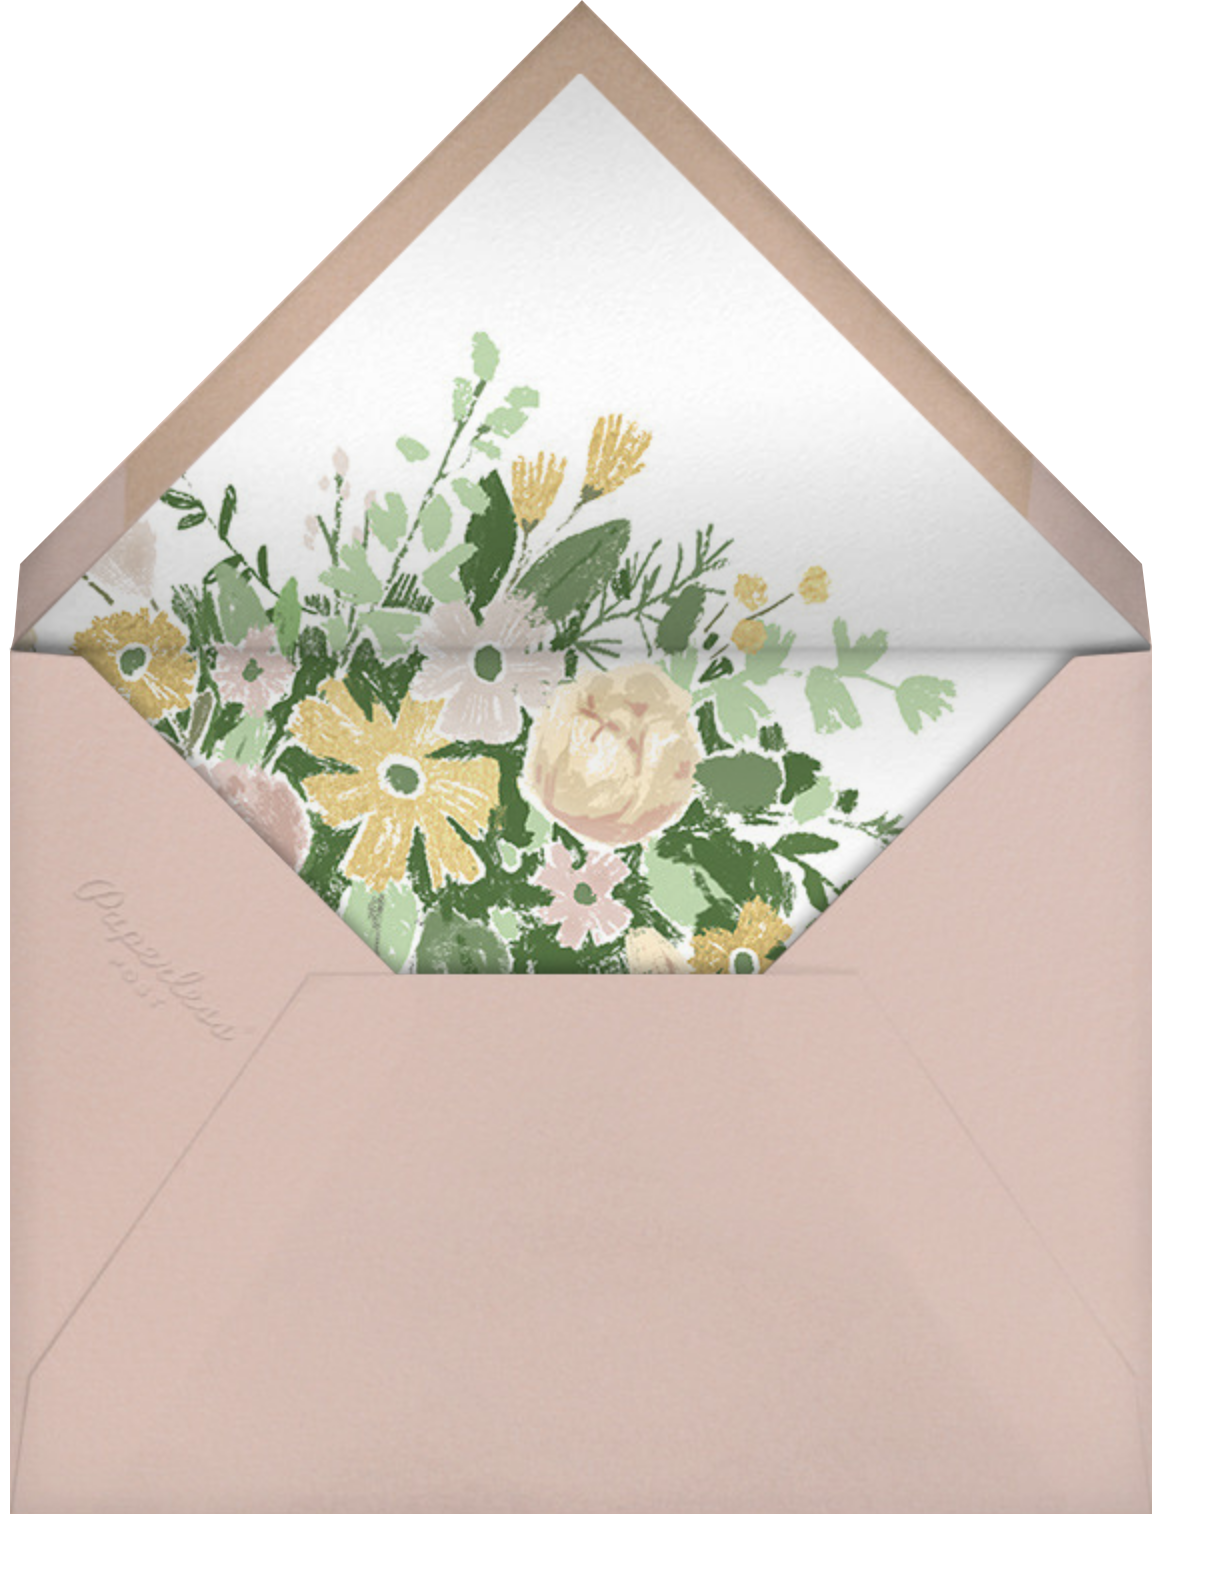 Dripping Floral - Moss - Paperless Post - Save the date - envelope back